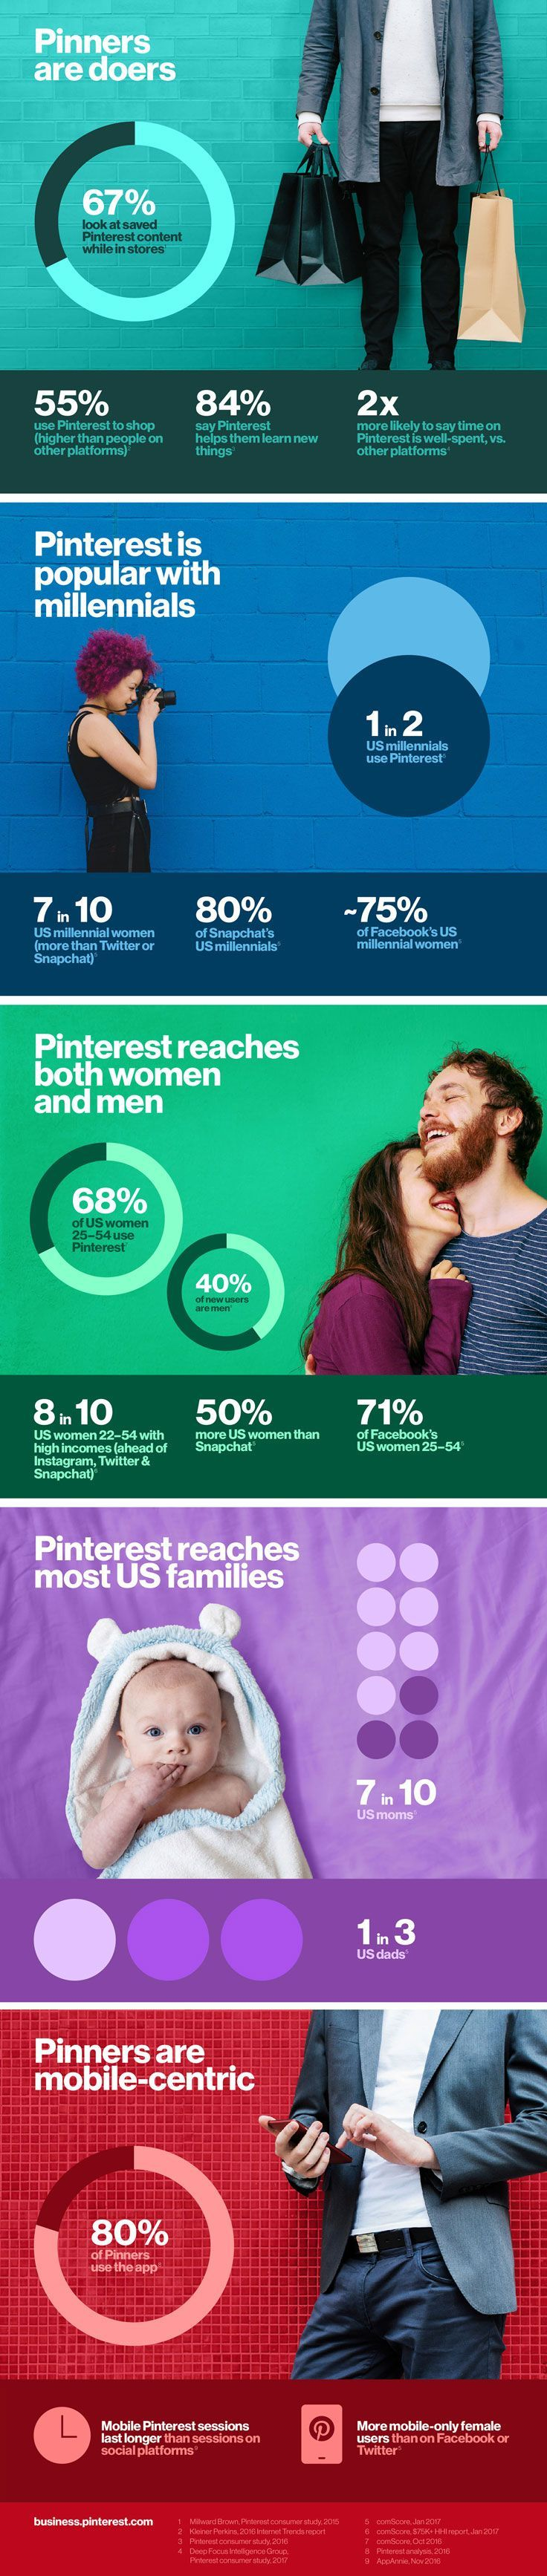 Pinterest tips for business: Do you know who's using Pinterest? Check this infographic to see if a Pinterest presence will benefit your business, brand, or blog. Social media marketing on Pinterest is one of the easiest ways to drive traffic to your website.